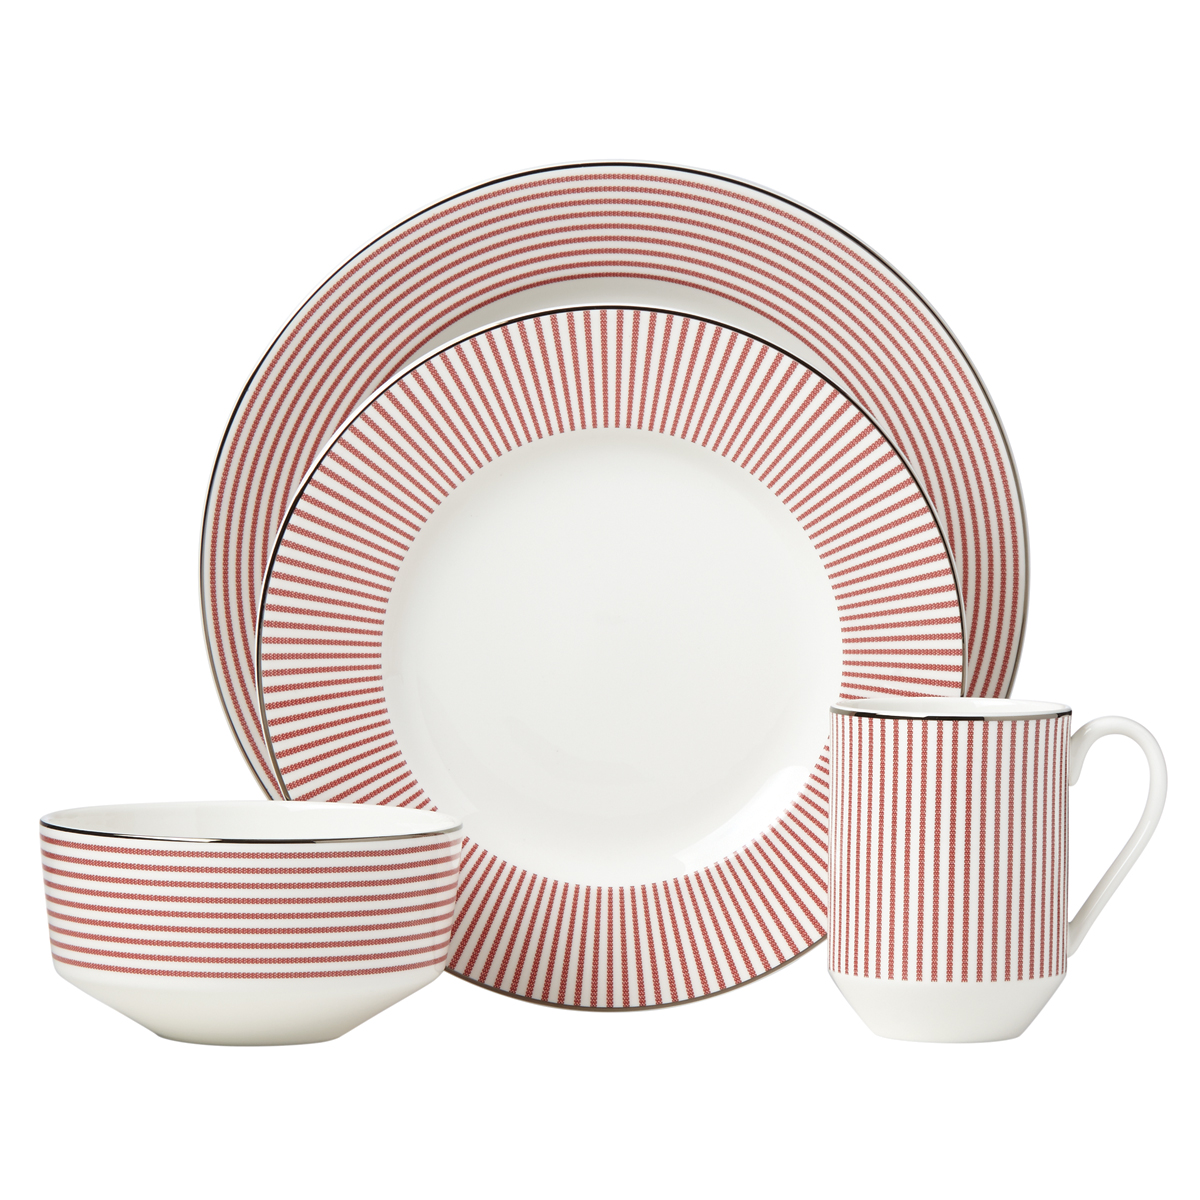 Kate Spade China by Lenox, Laurel St Red 4 Piece Place Setting